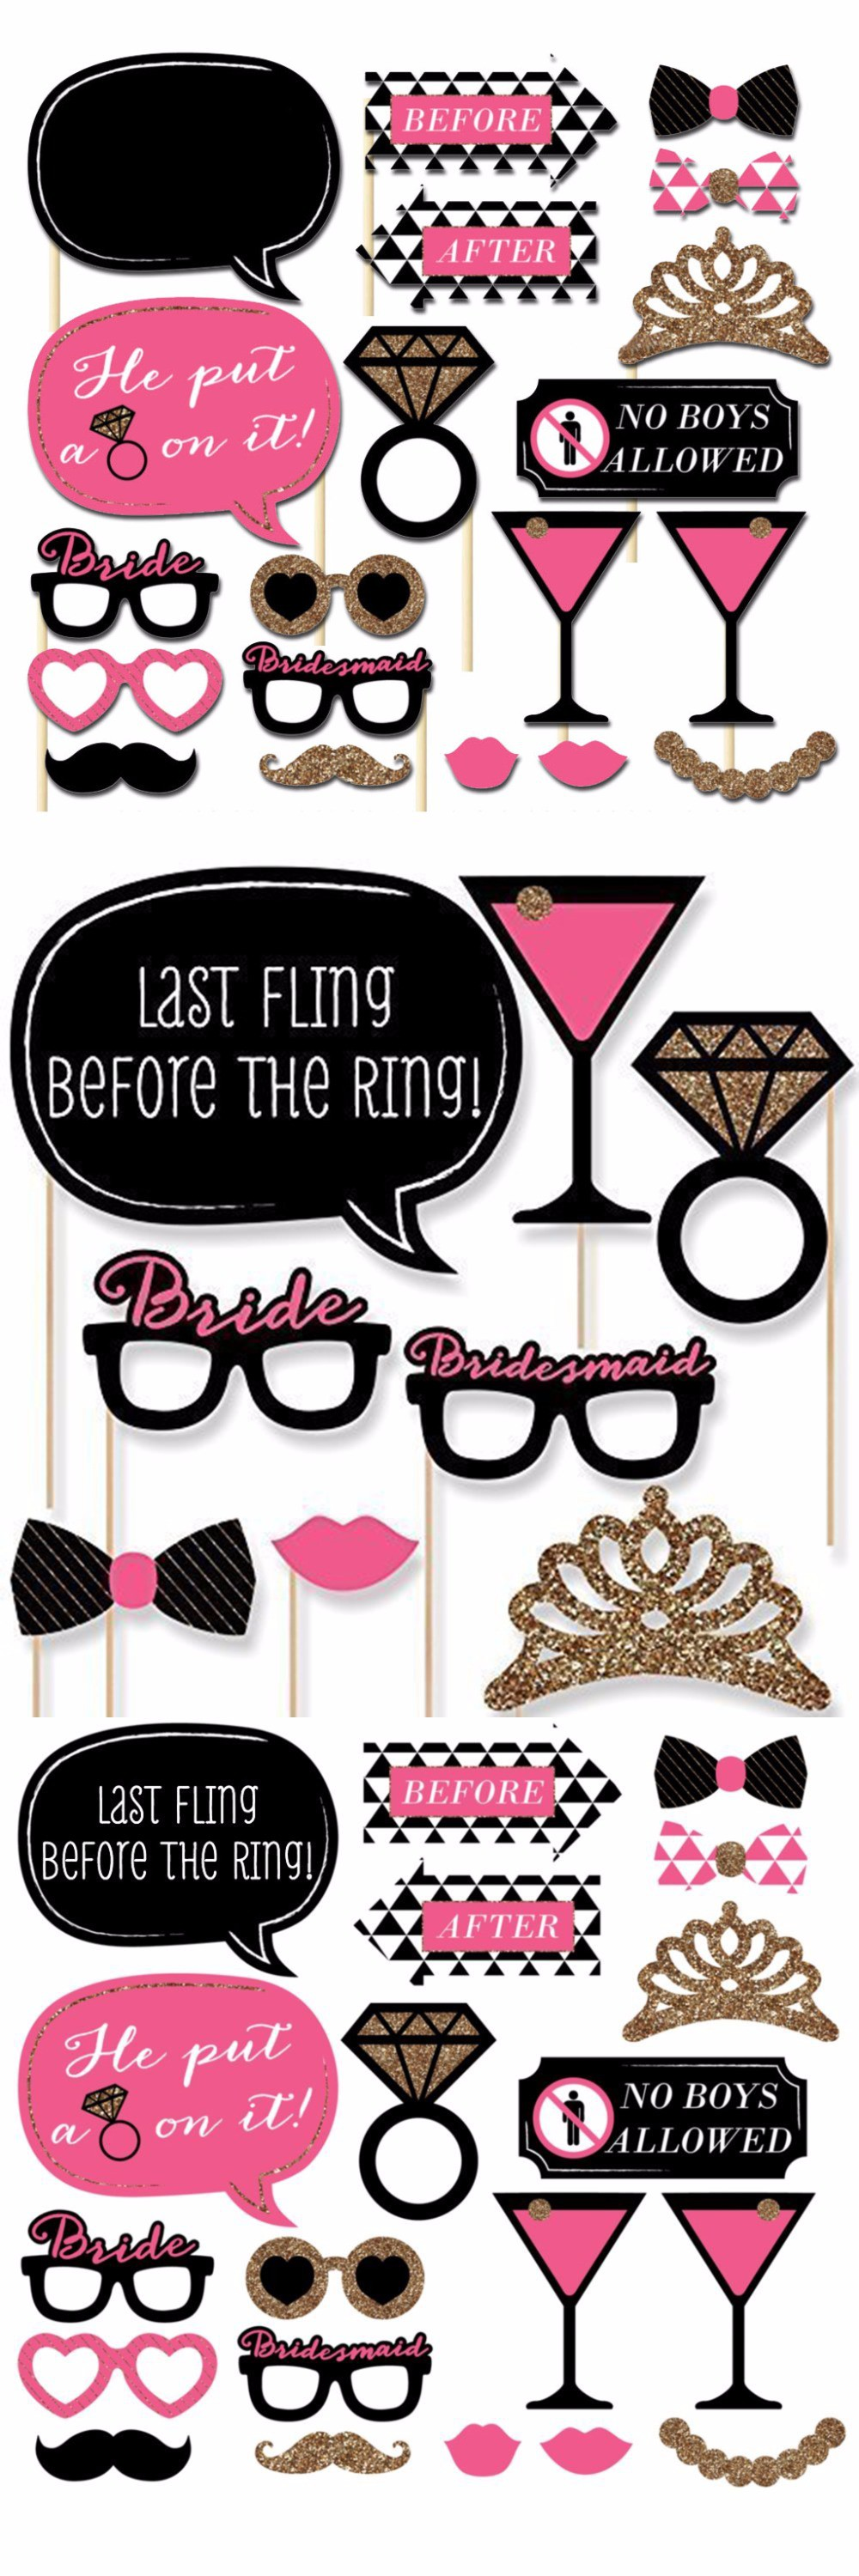 e50e5f9f14 20 pcs/set Bachelorette Party Photo Booth Props On A Stick Girls ...